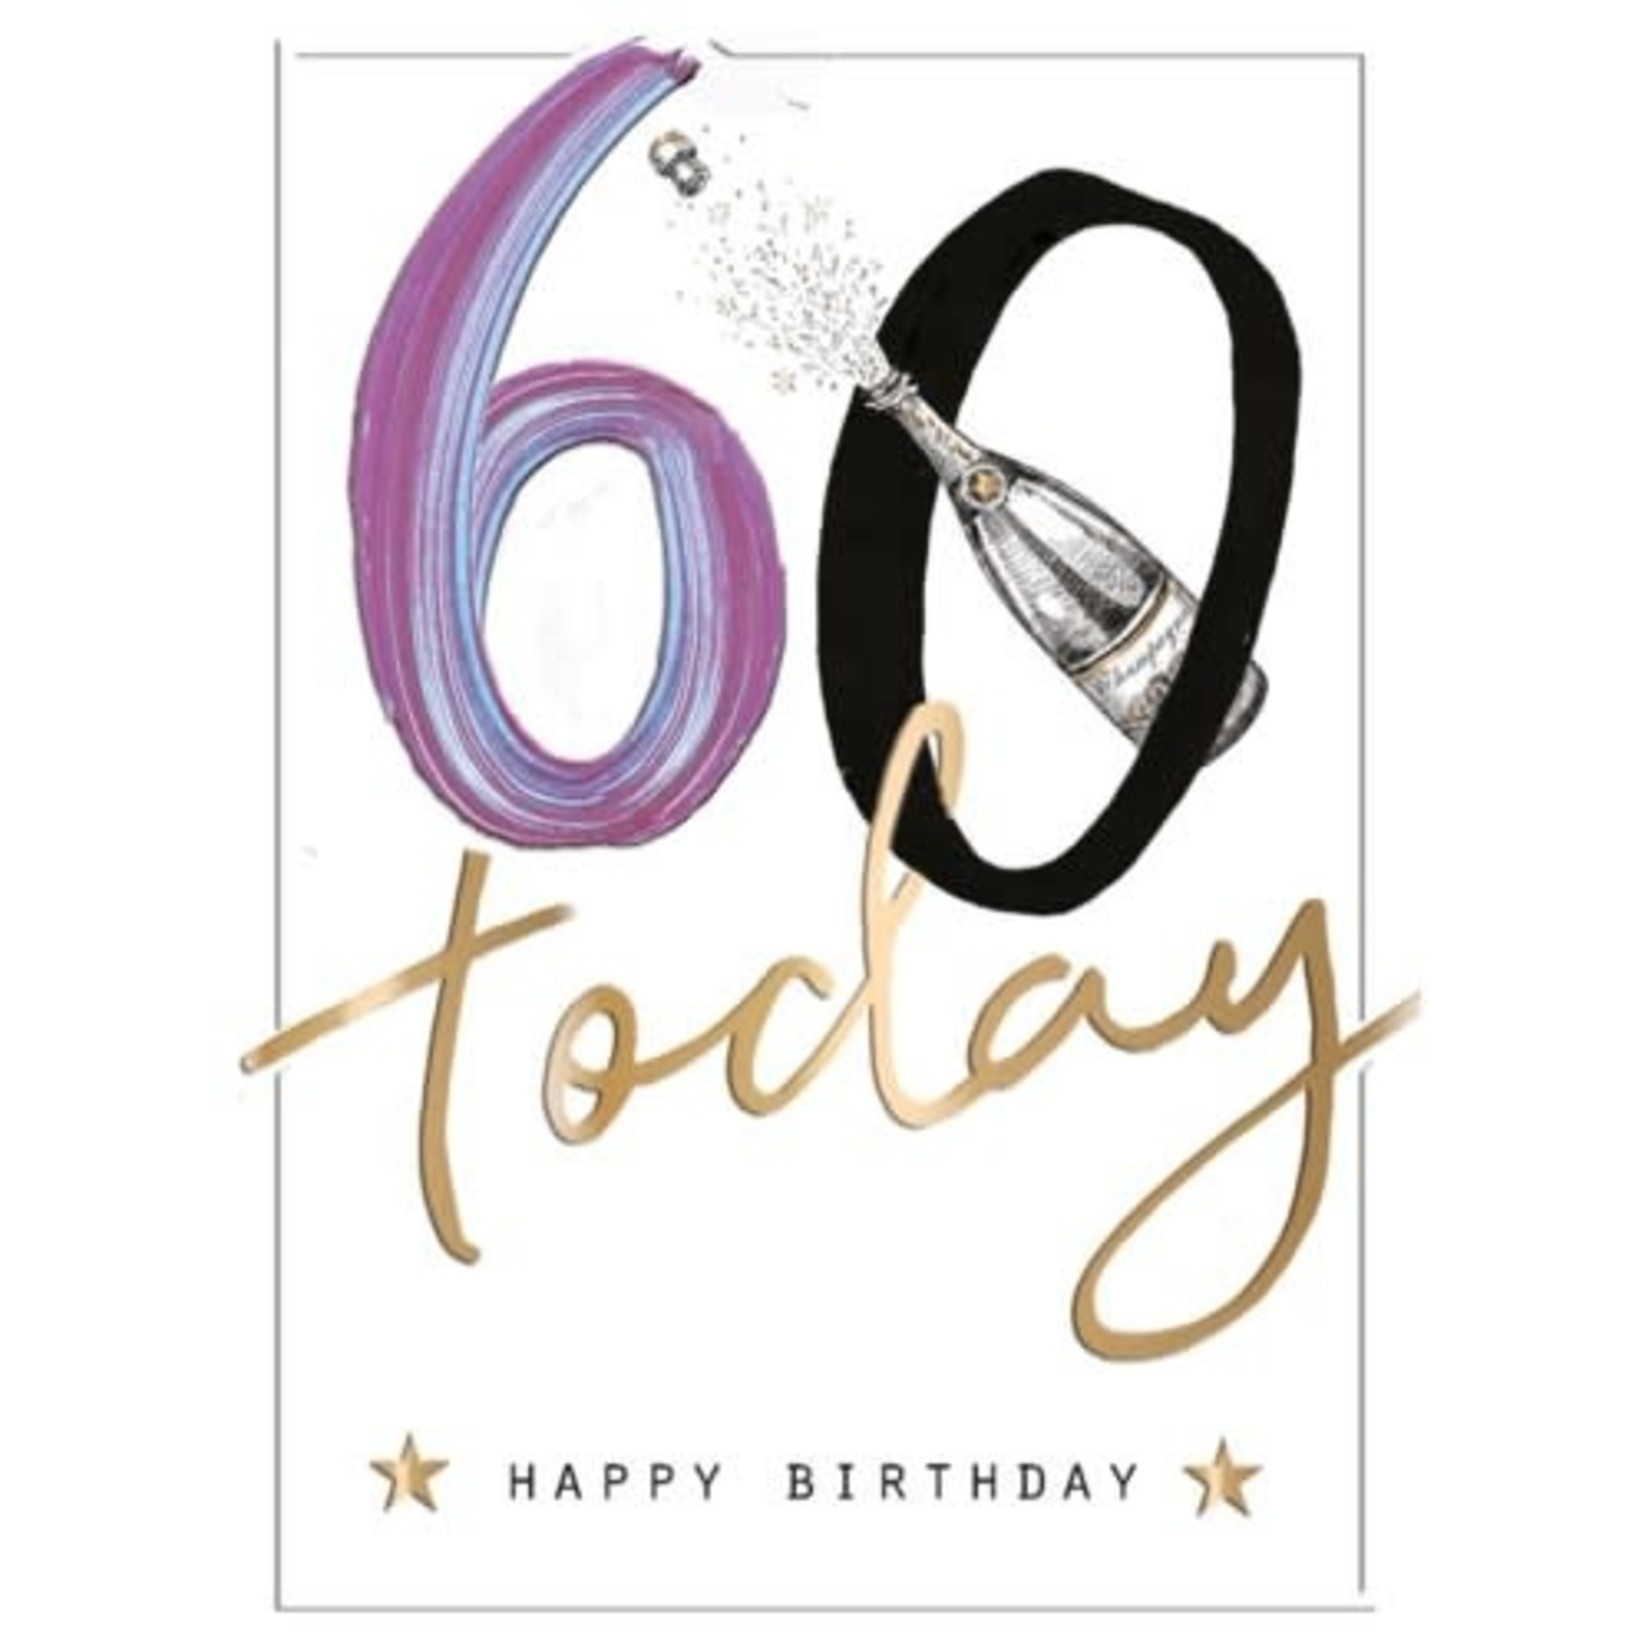 60 TODAY CARD